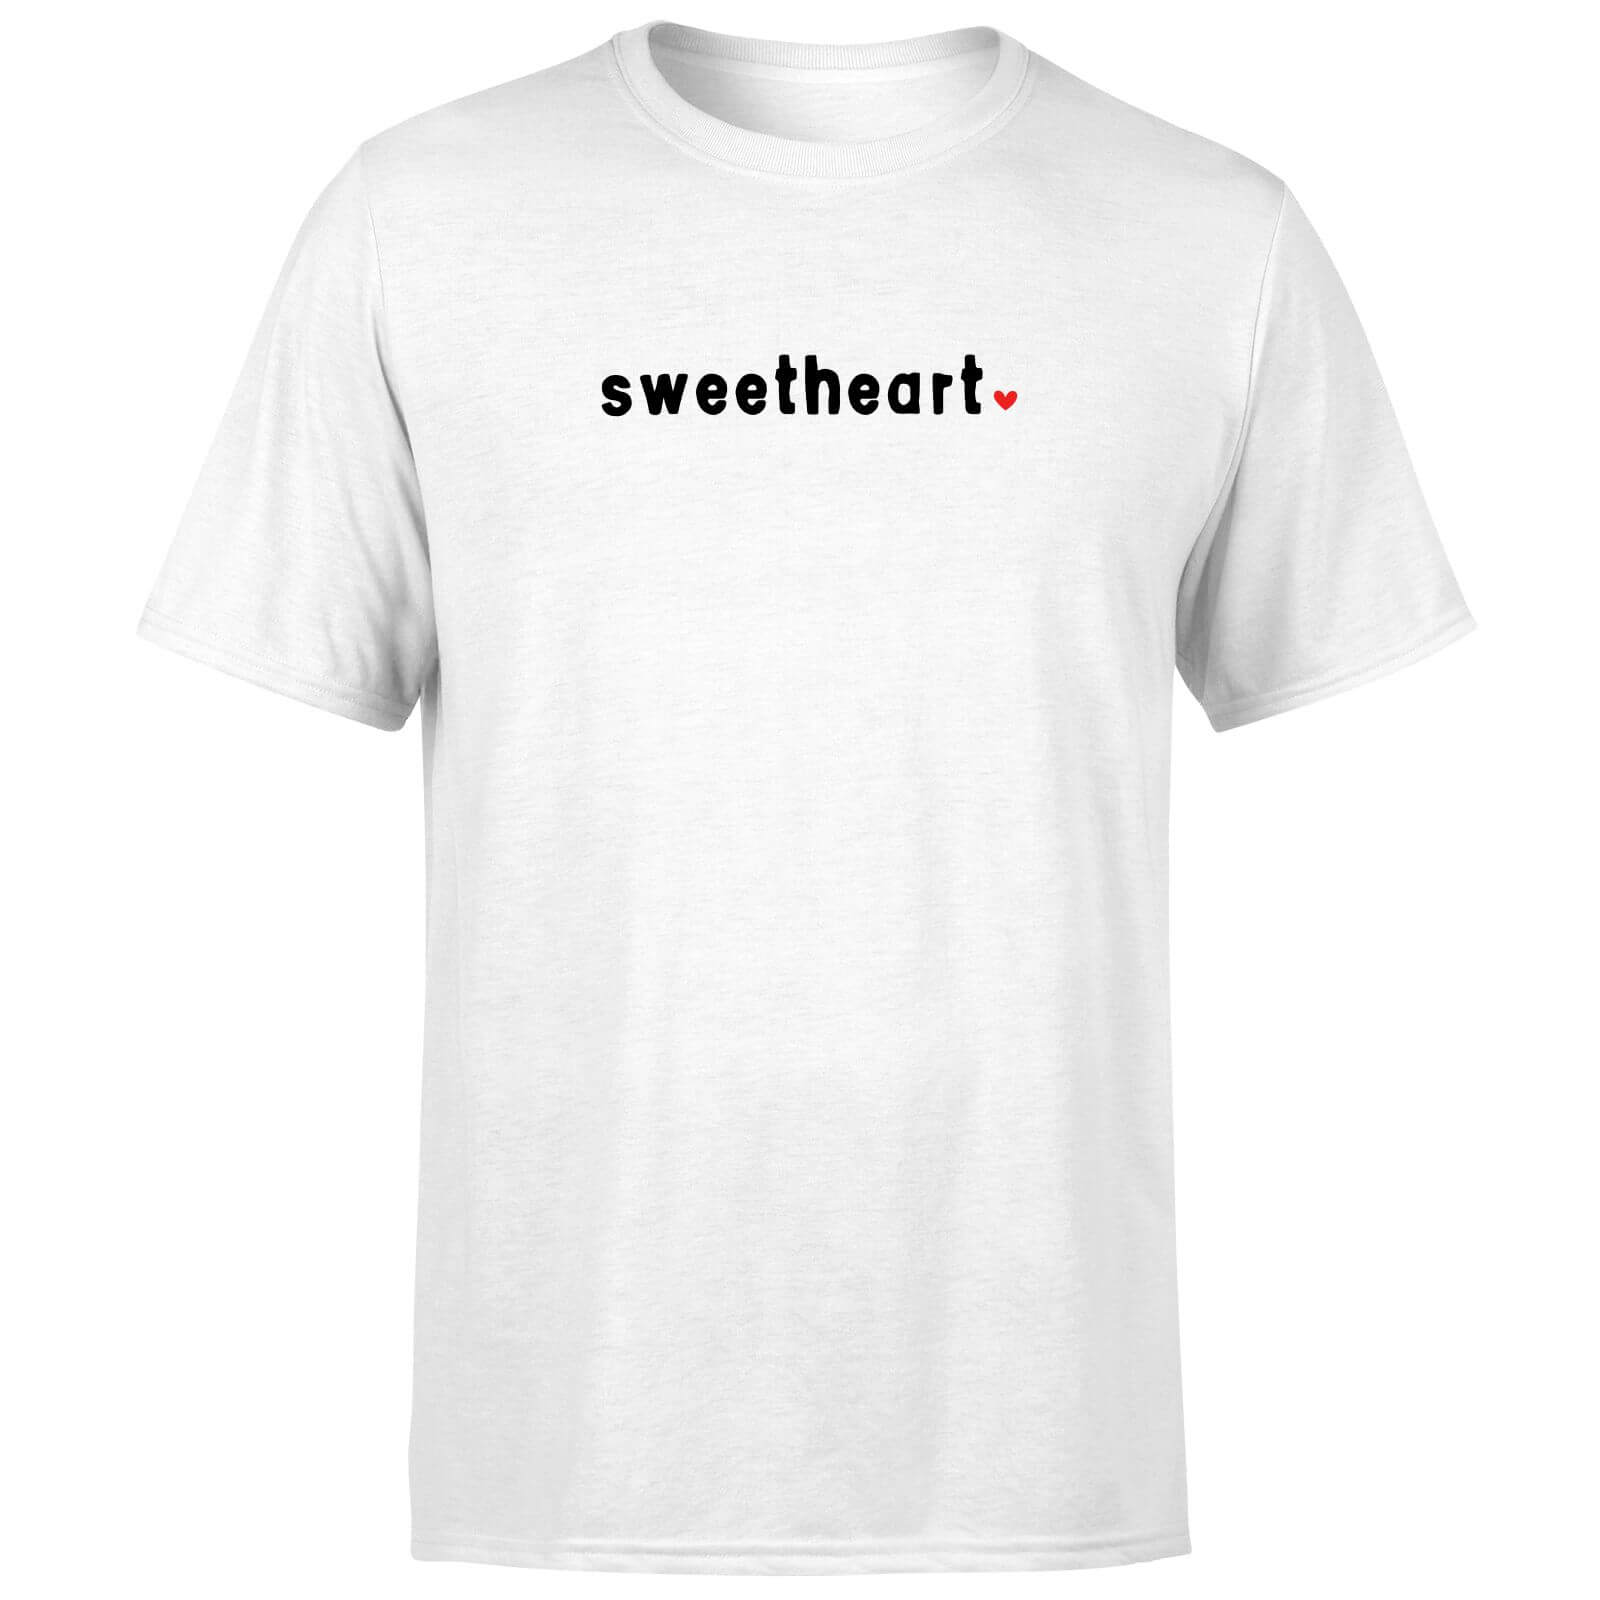 Sweetheart T-Shirt - White